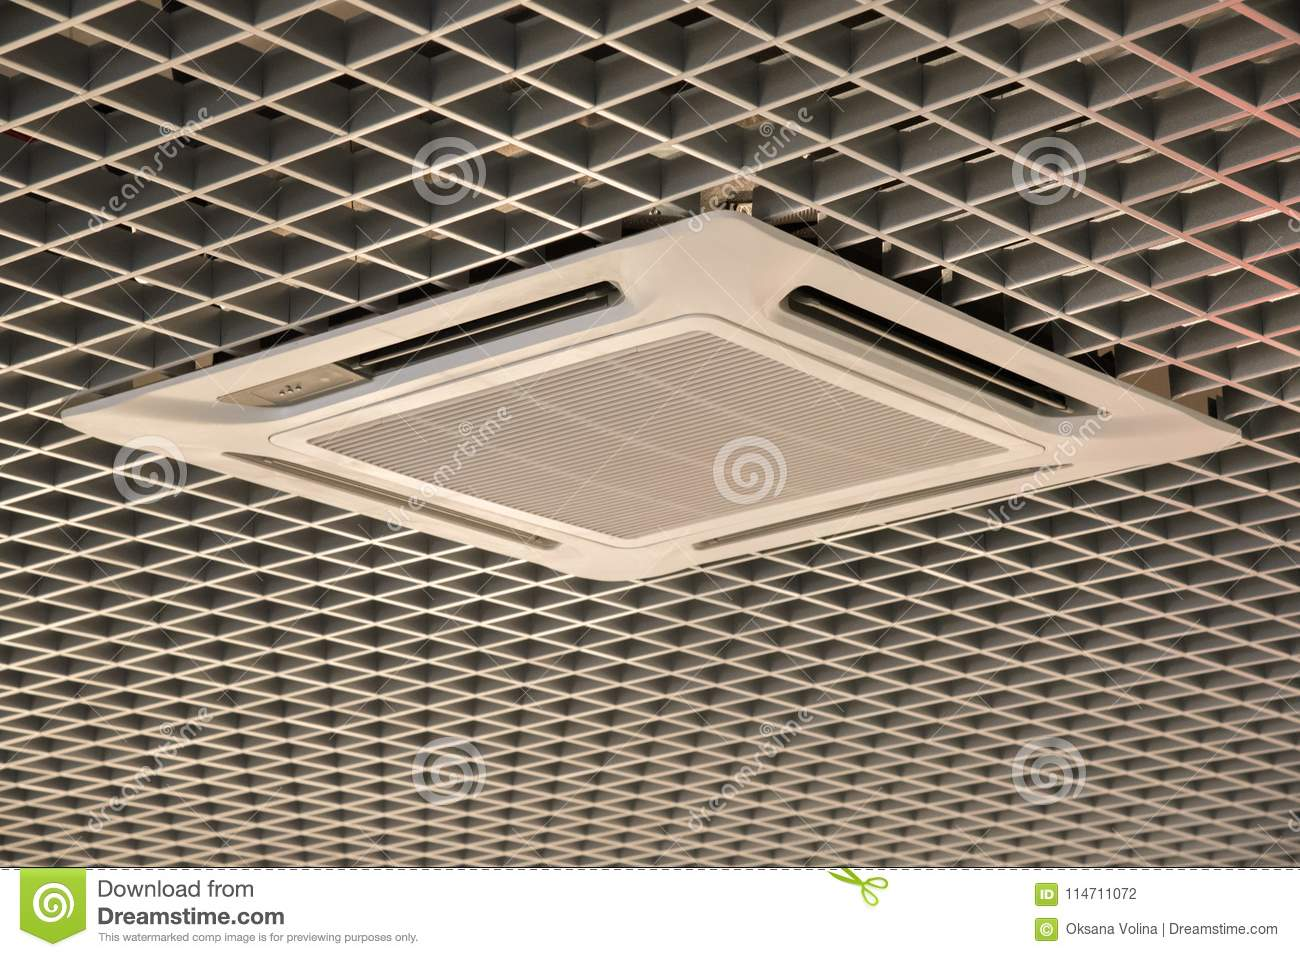 Smooth beautiful trellised ceiling with air conditioning indoors